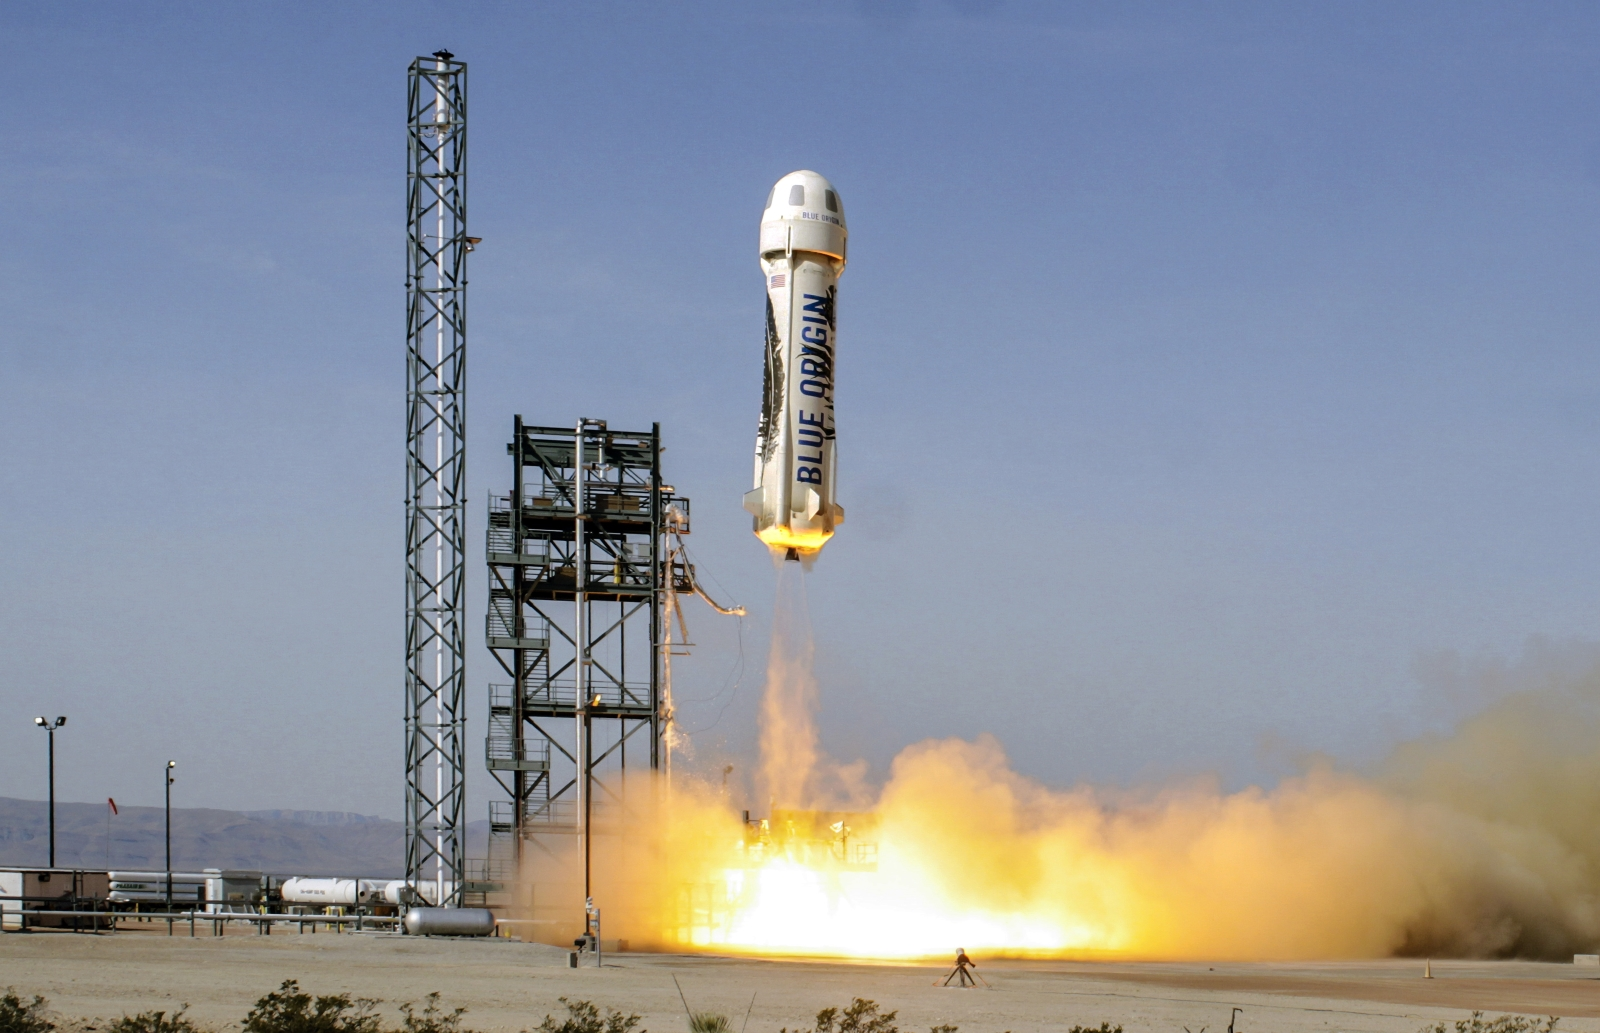 New Shepard launch (2016-06-19)